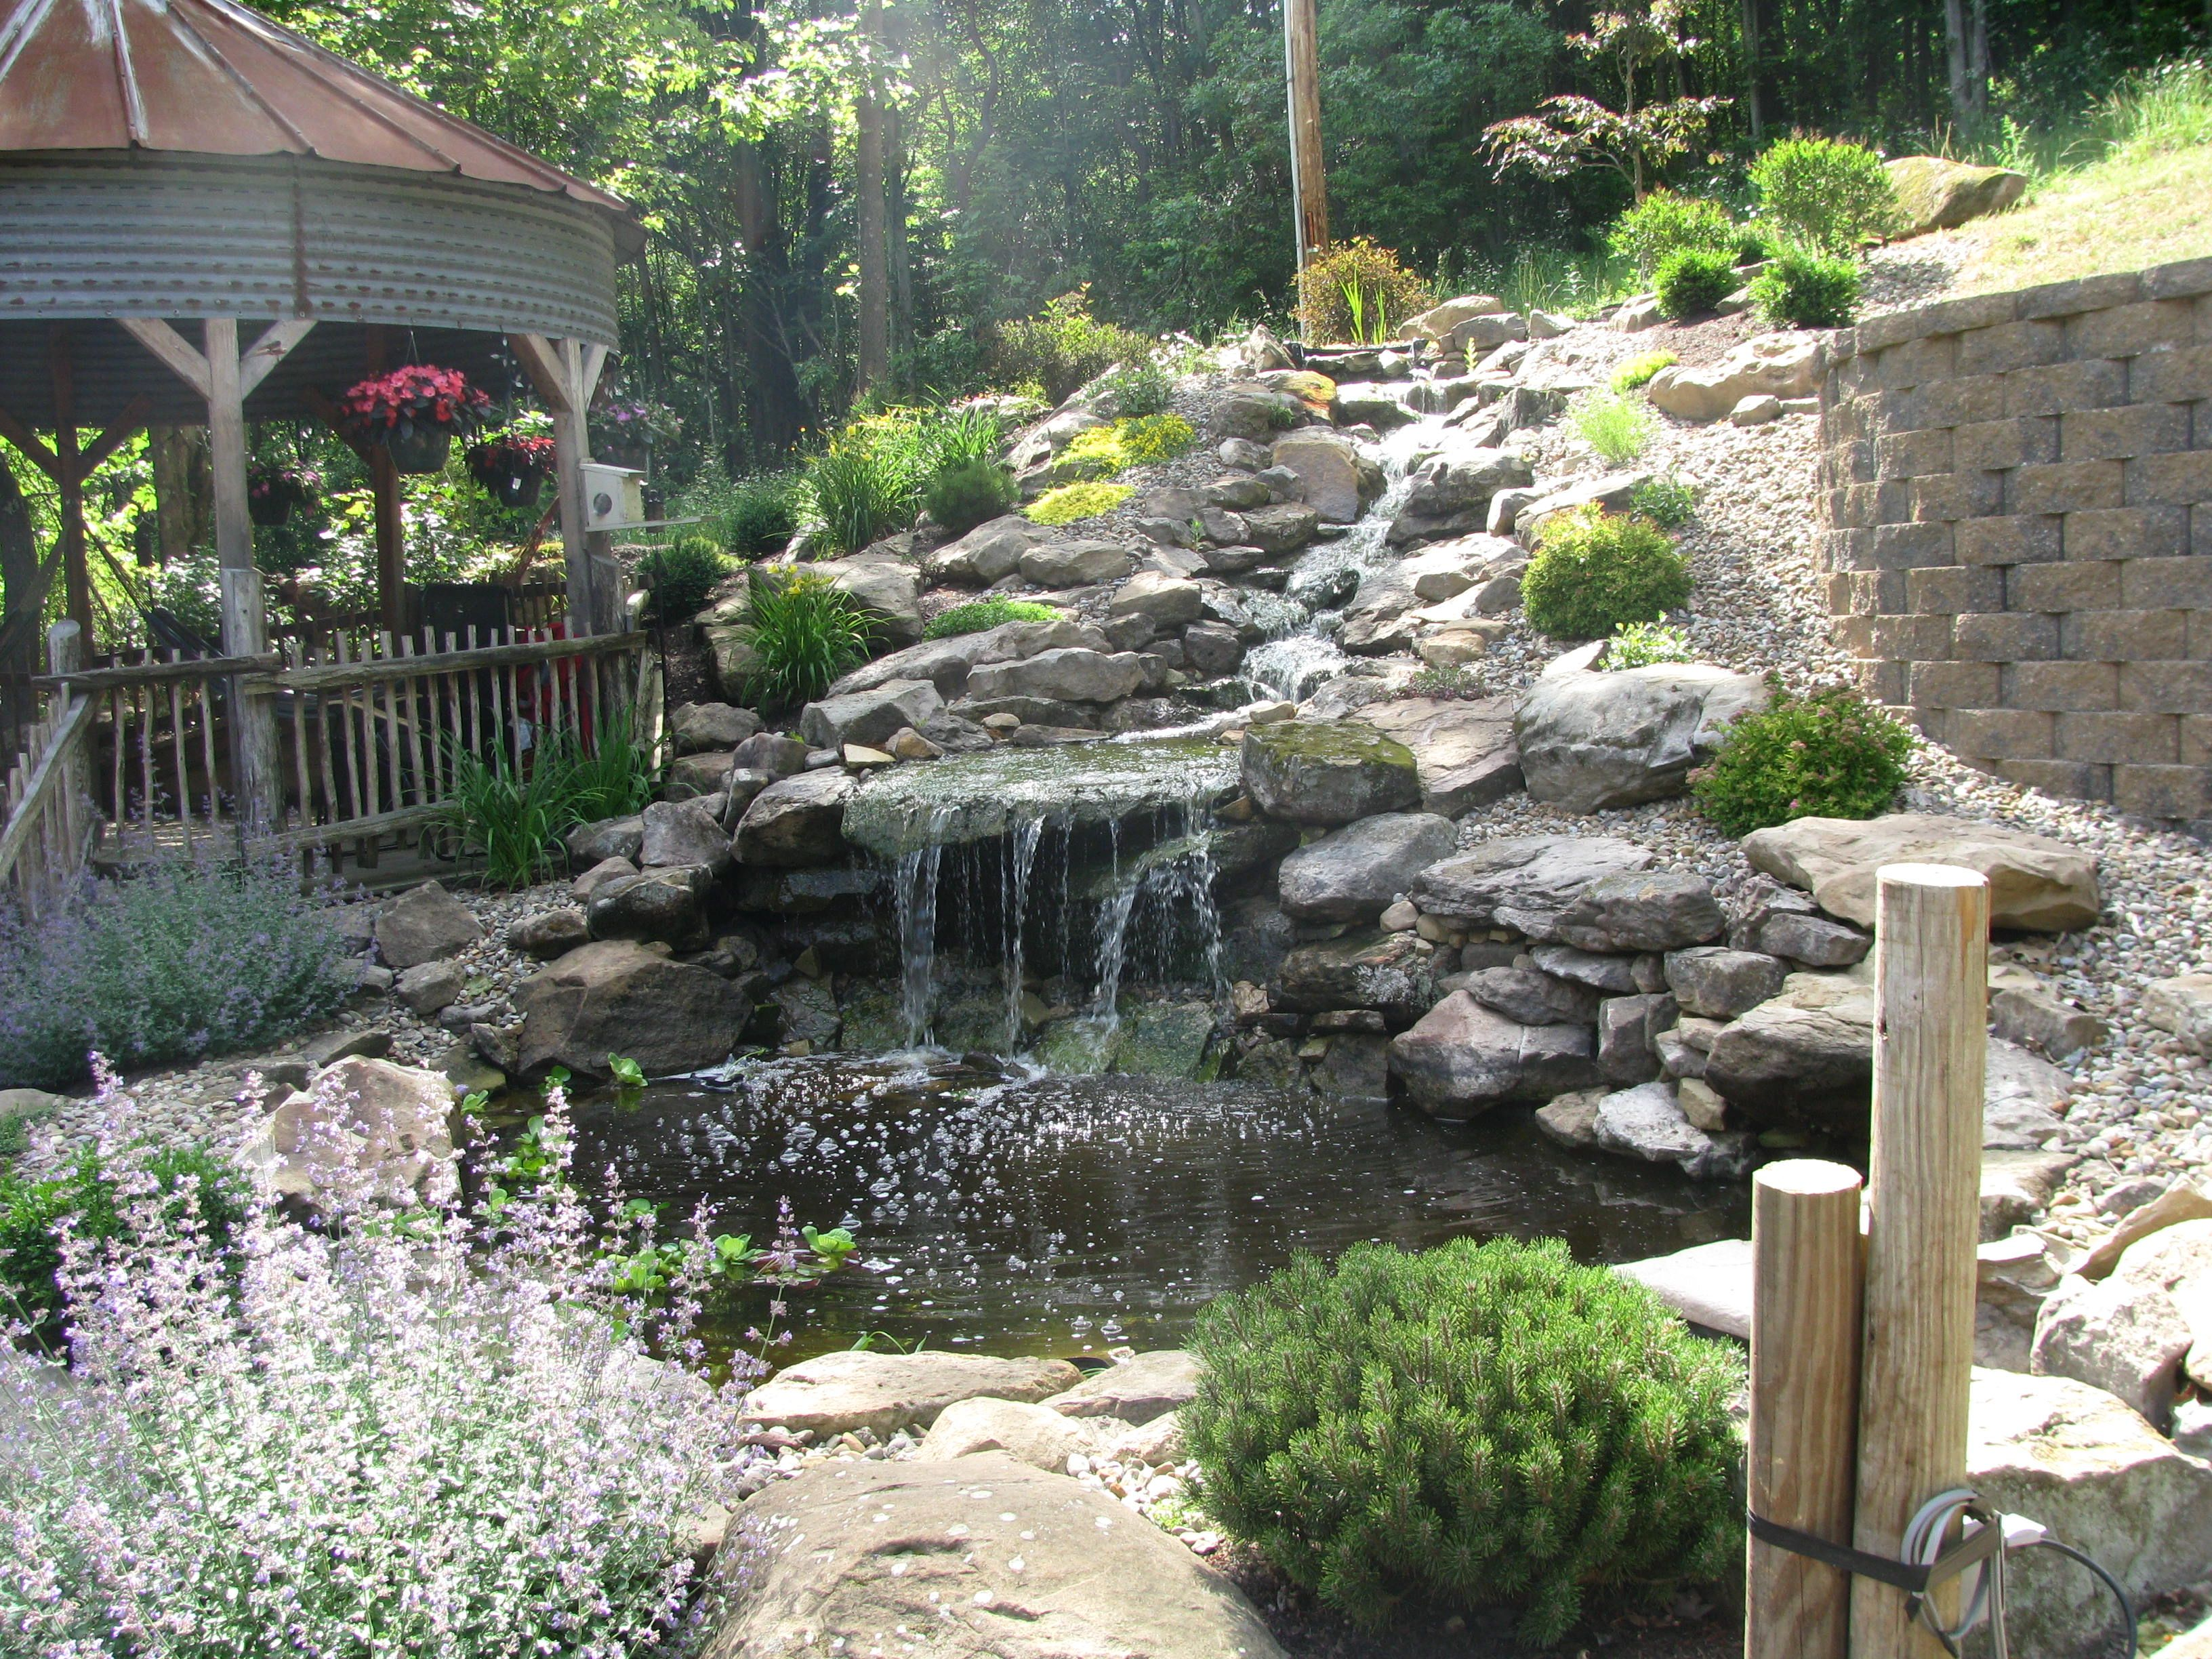 waterfall cascading down from 25ft above. Custom sandstone pond and falls that we created for our client